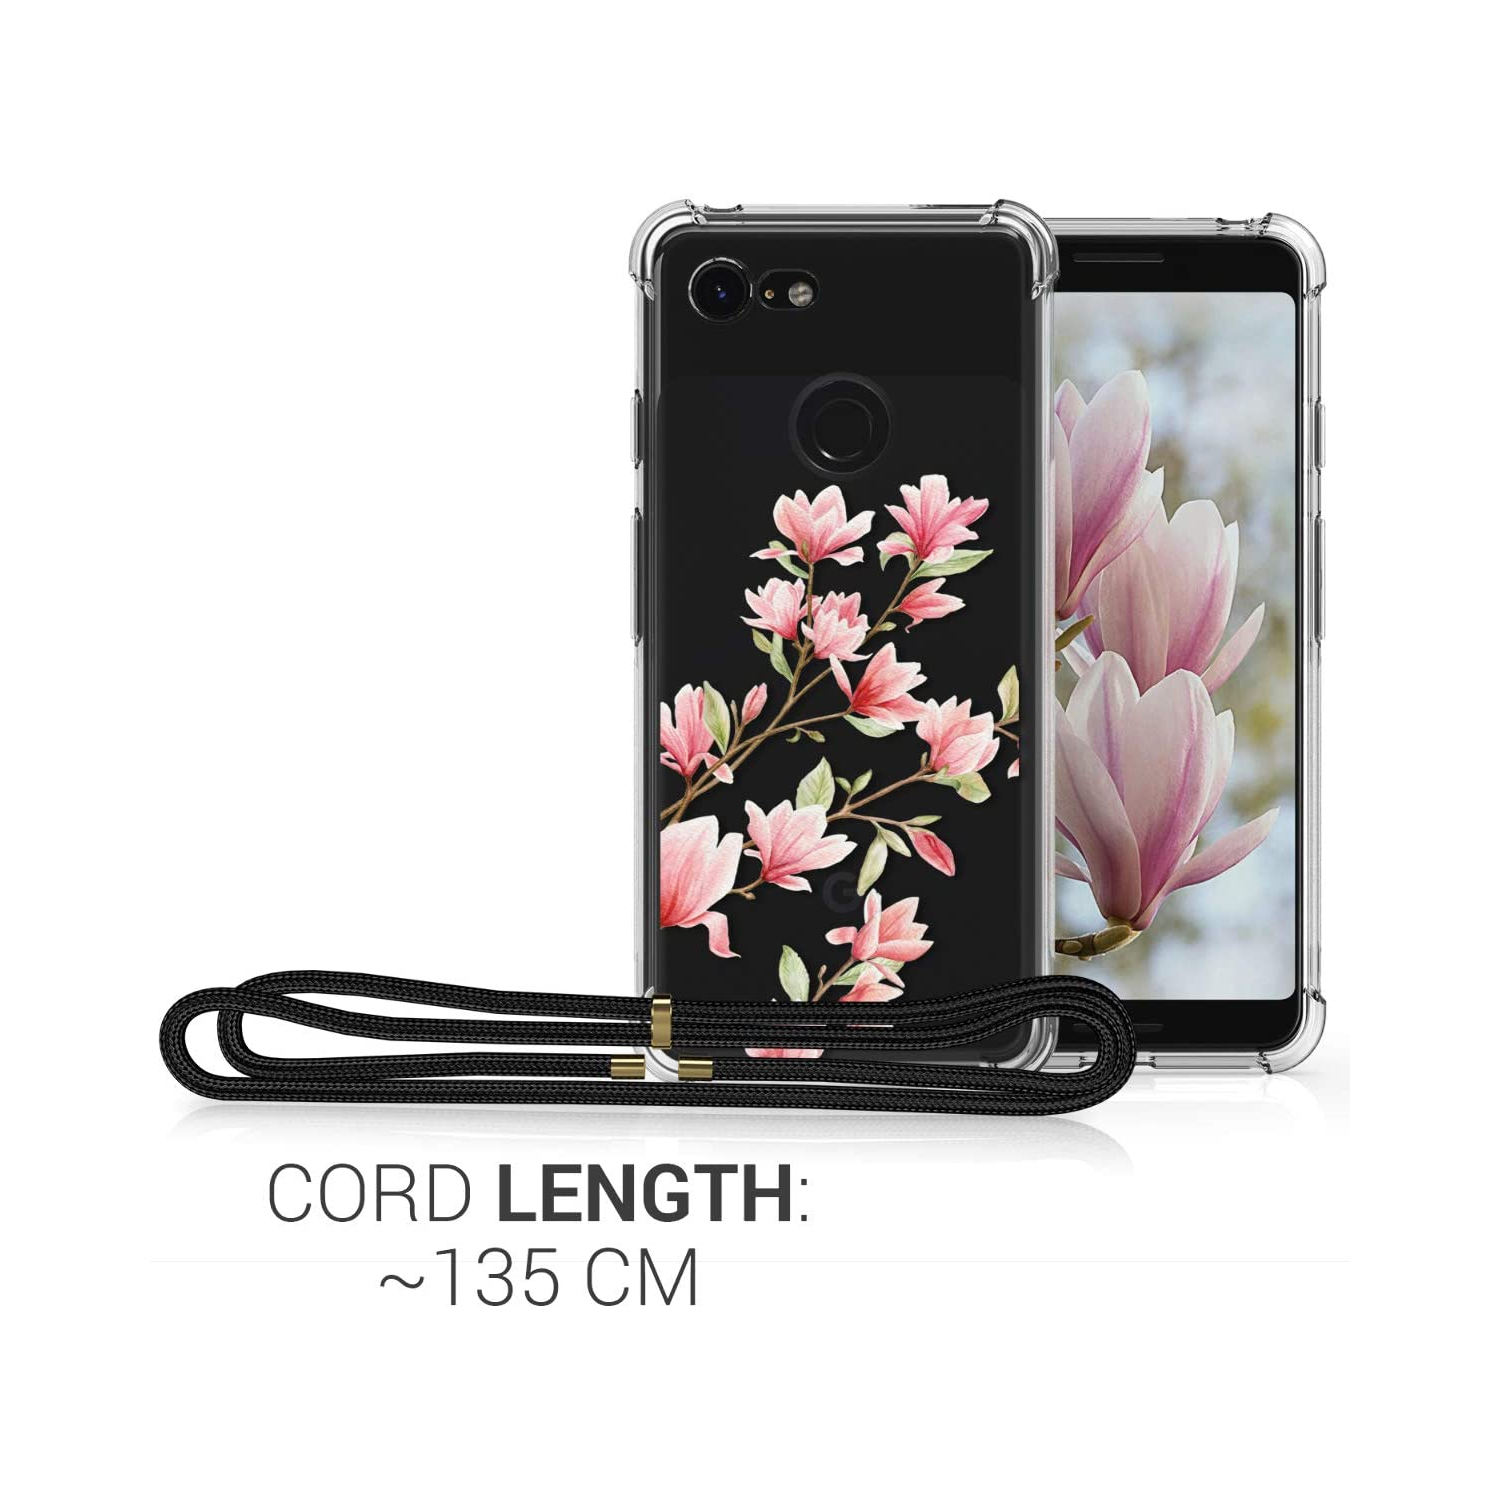 Clear TPU Cell Phone Mobile Cover Holder with Neck Cord Lanyard Strap Magnolias Light Pink//White//Transparent kwmobile Crossbody Case Compatible with Google Pixel 3